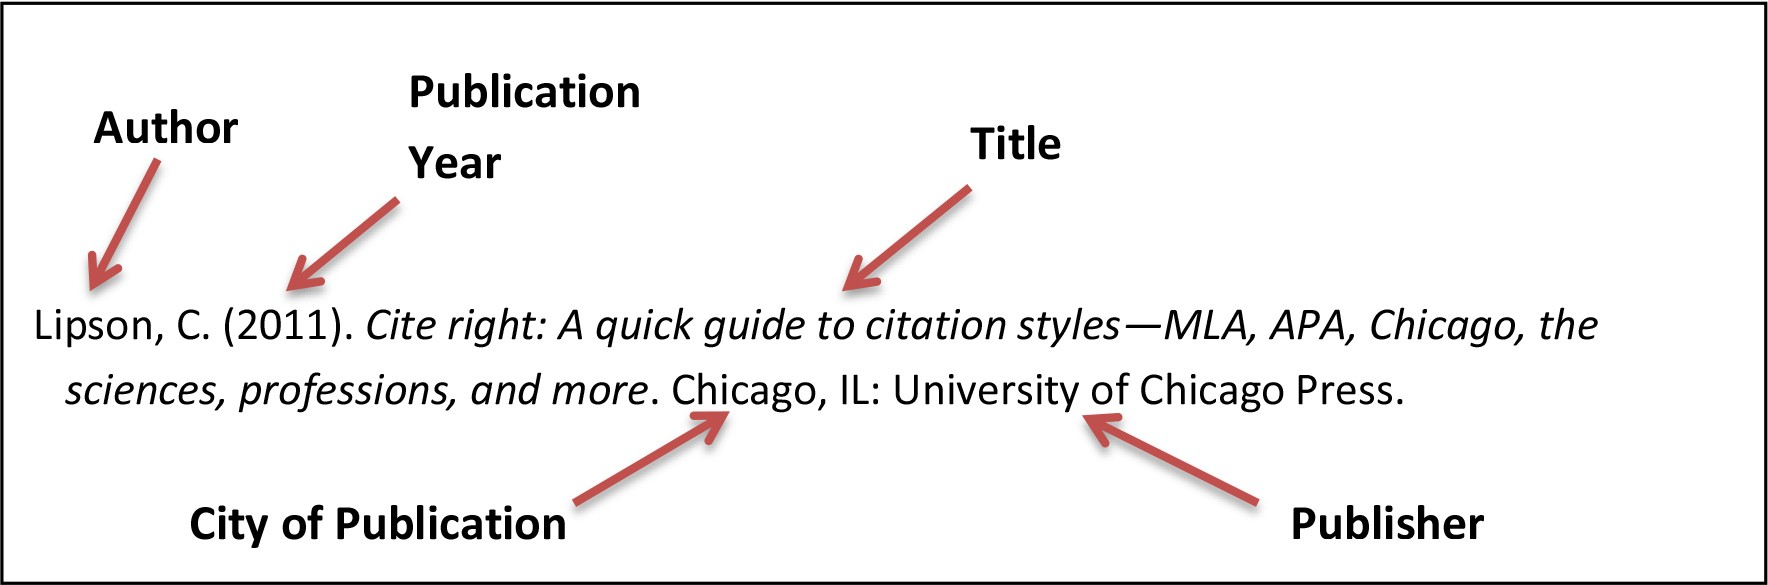 How to cite a book in apa format in references game writing jobs